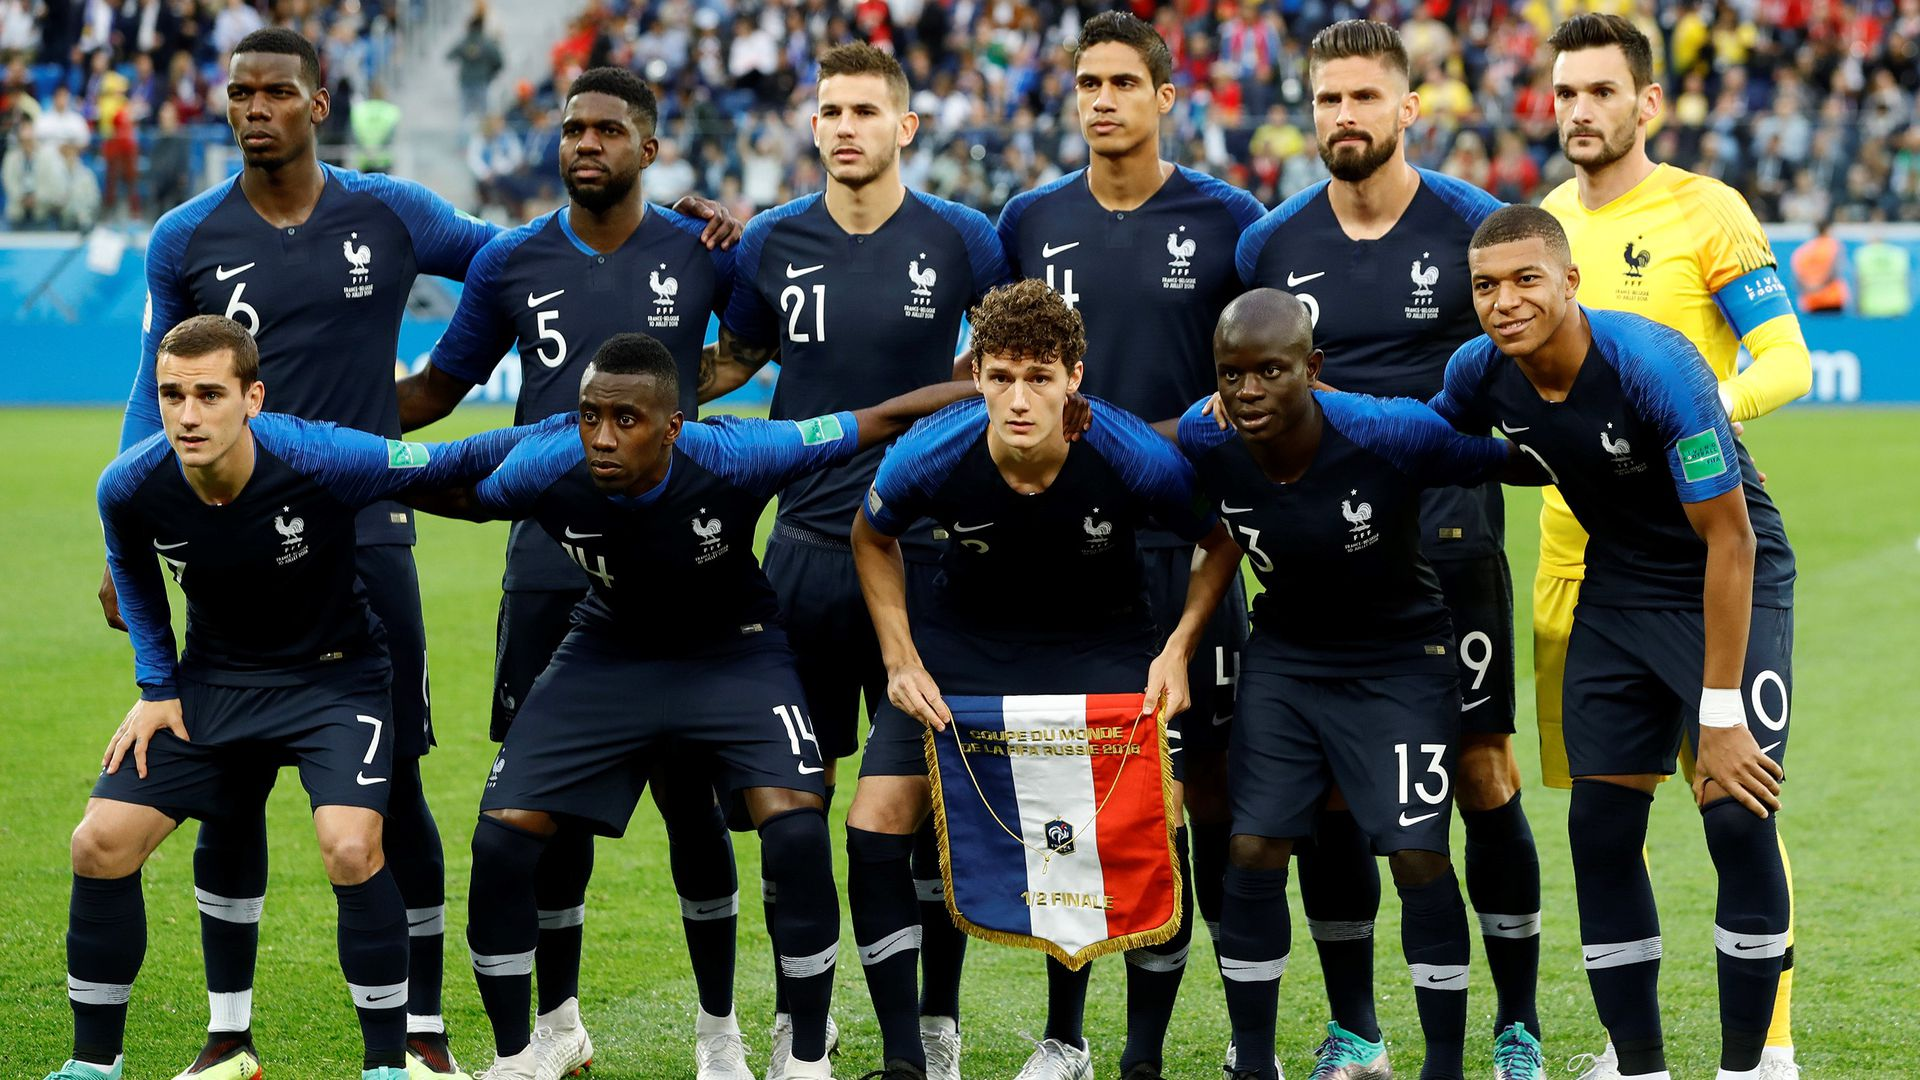 Players of France's soccer team.